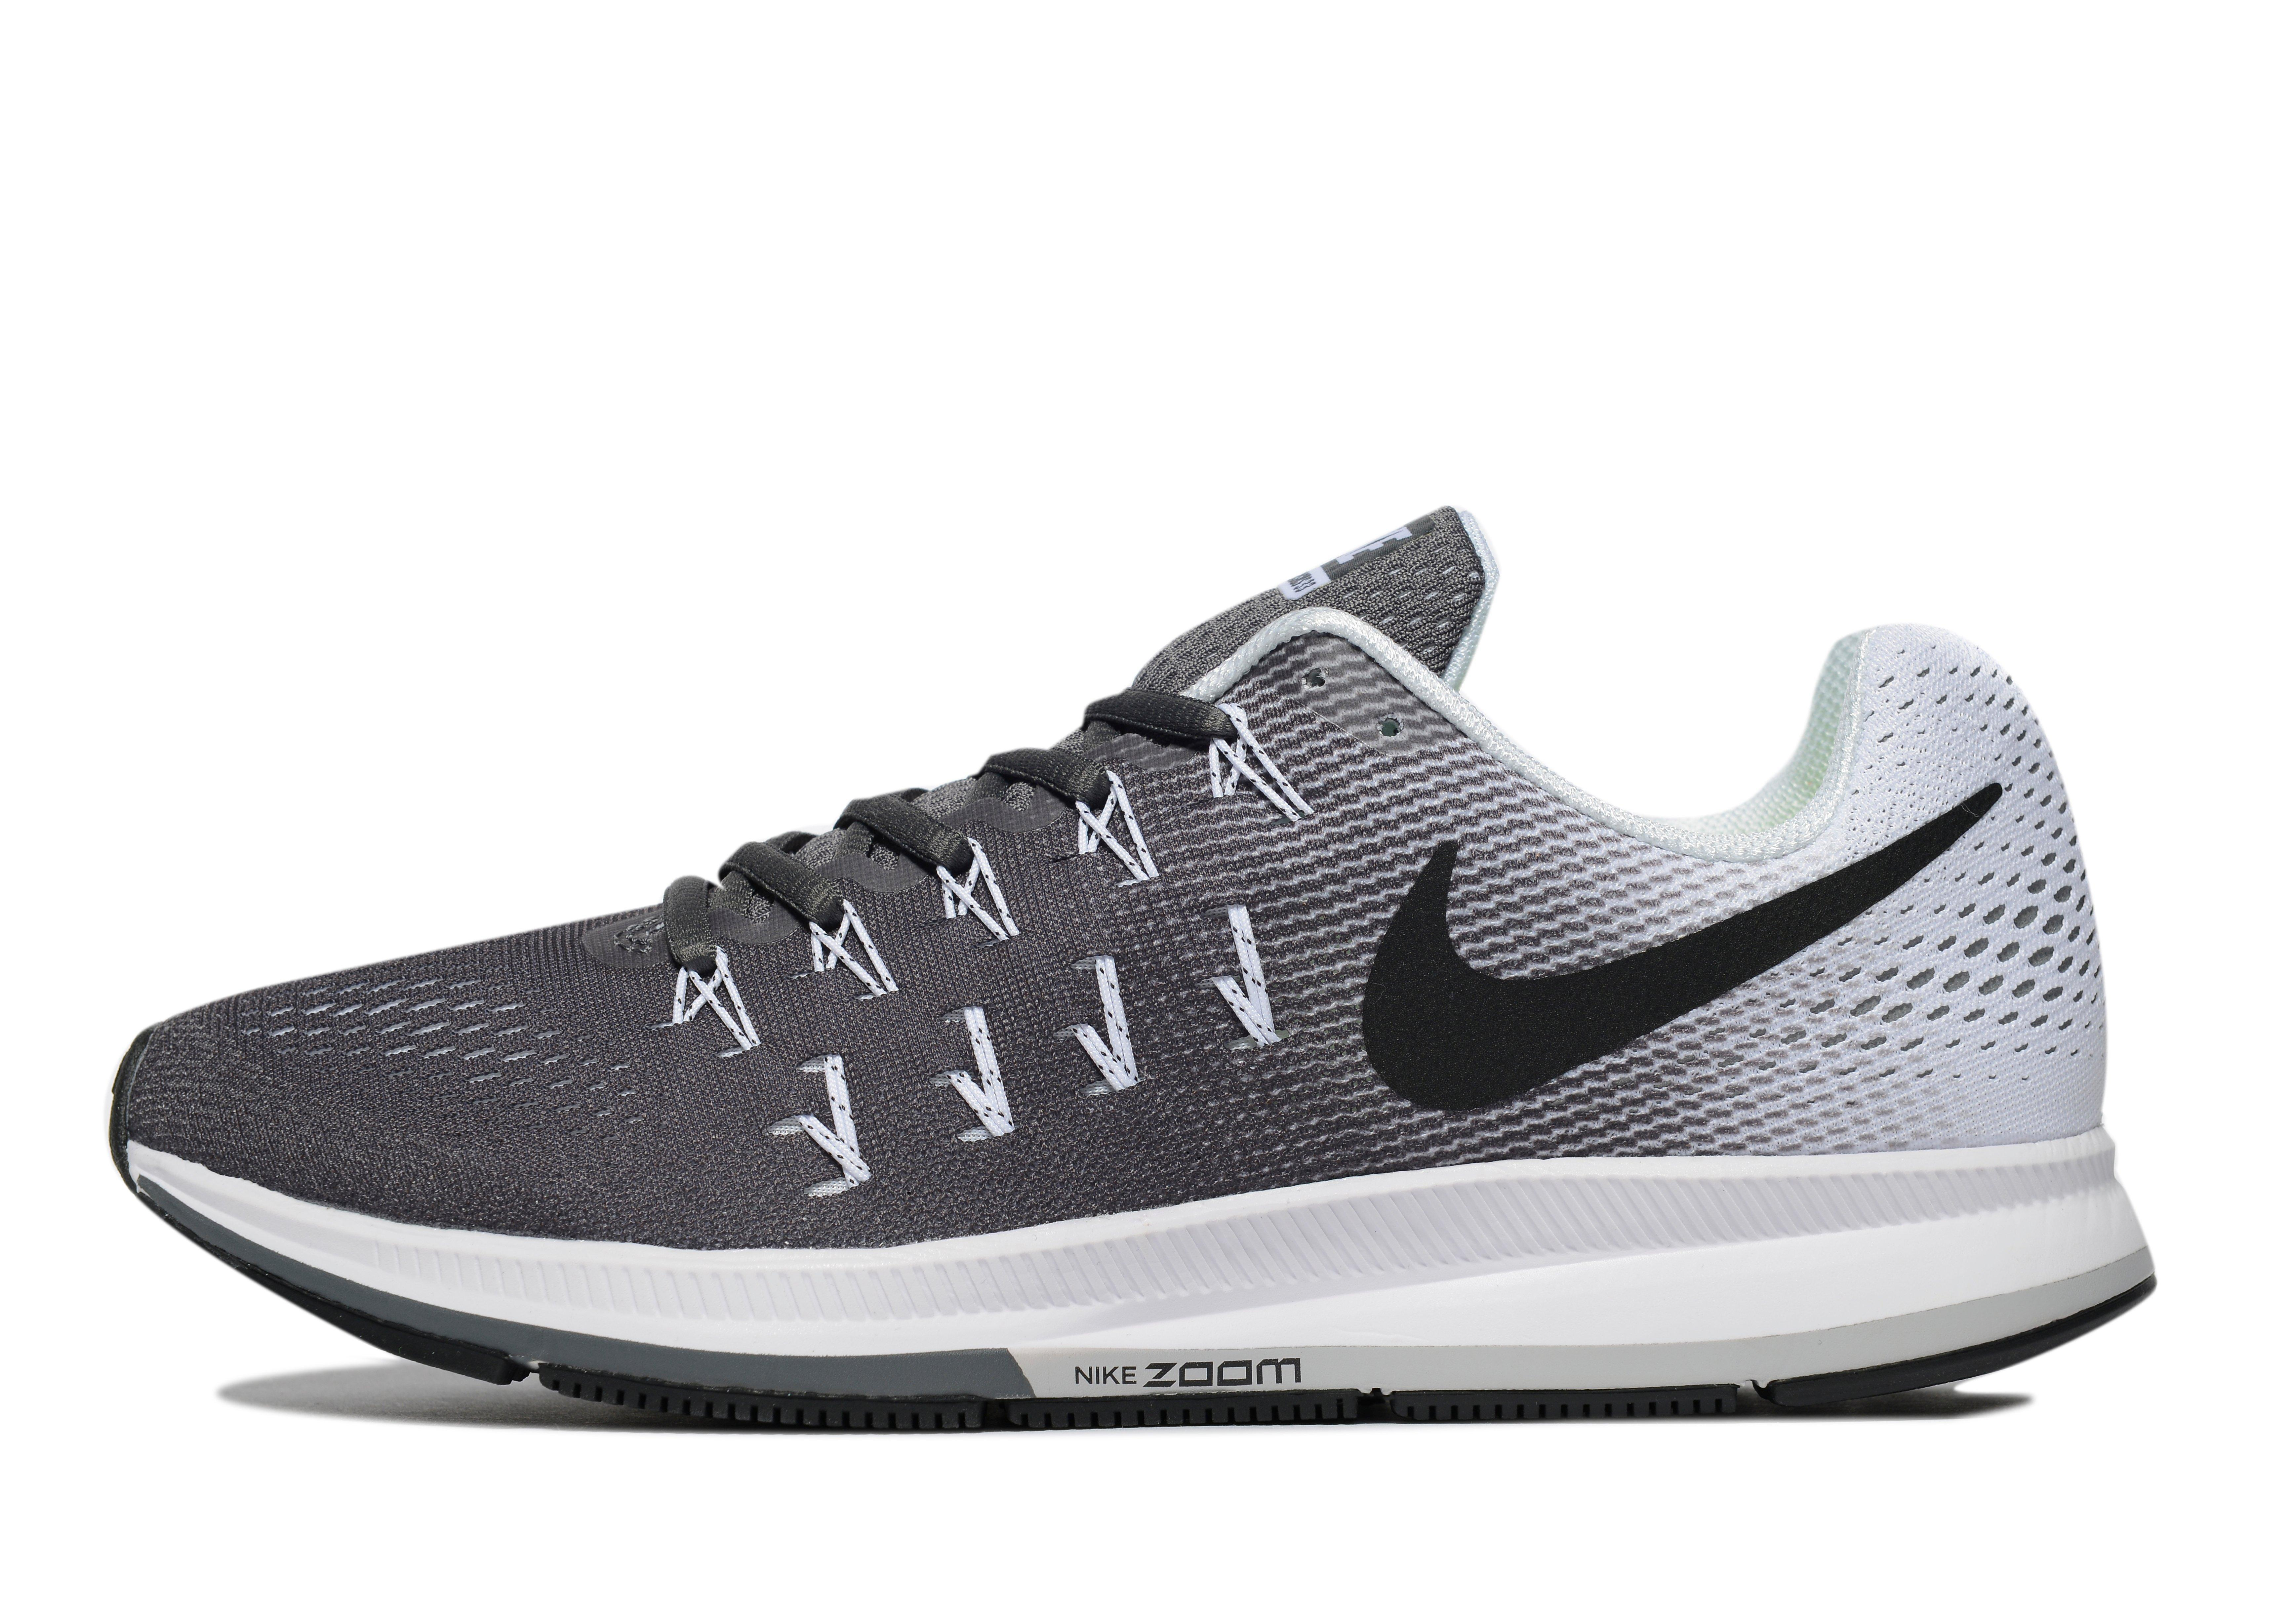 buy online d39e8 ac0b5 purchase nike zoom pegasus 33 jd sports 96f67 77391